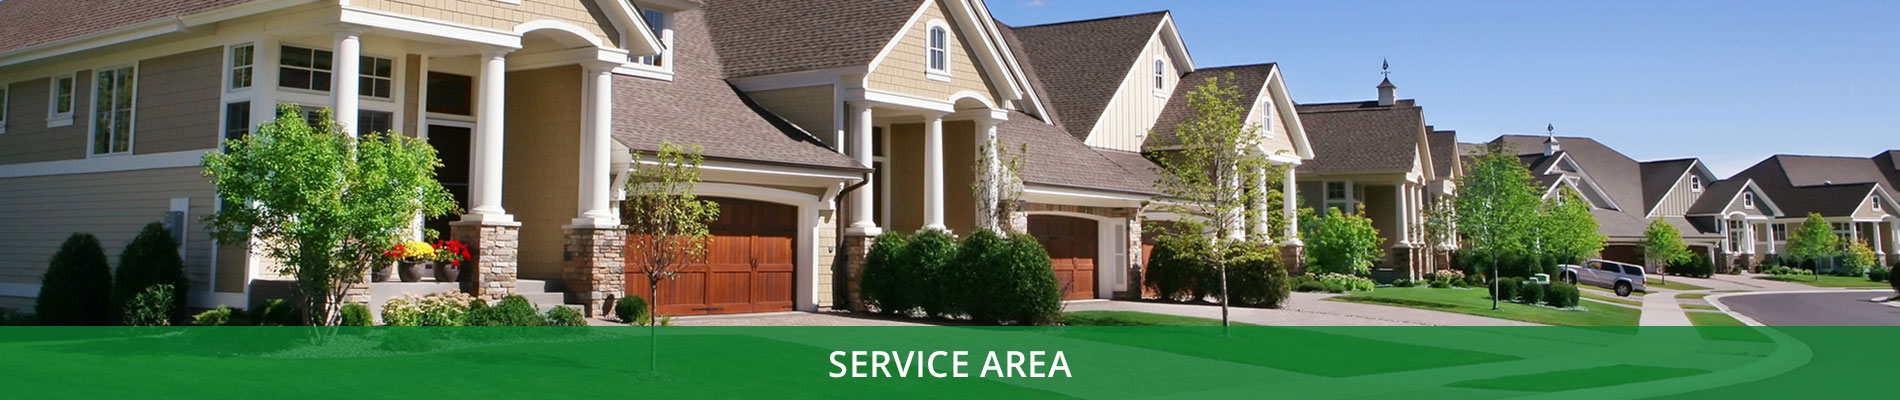 Brooklyn Park Mn Lawn Care Services Snow Removal